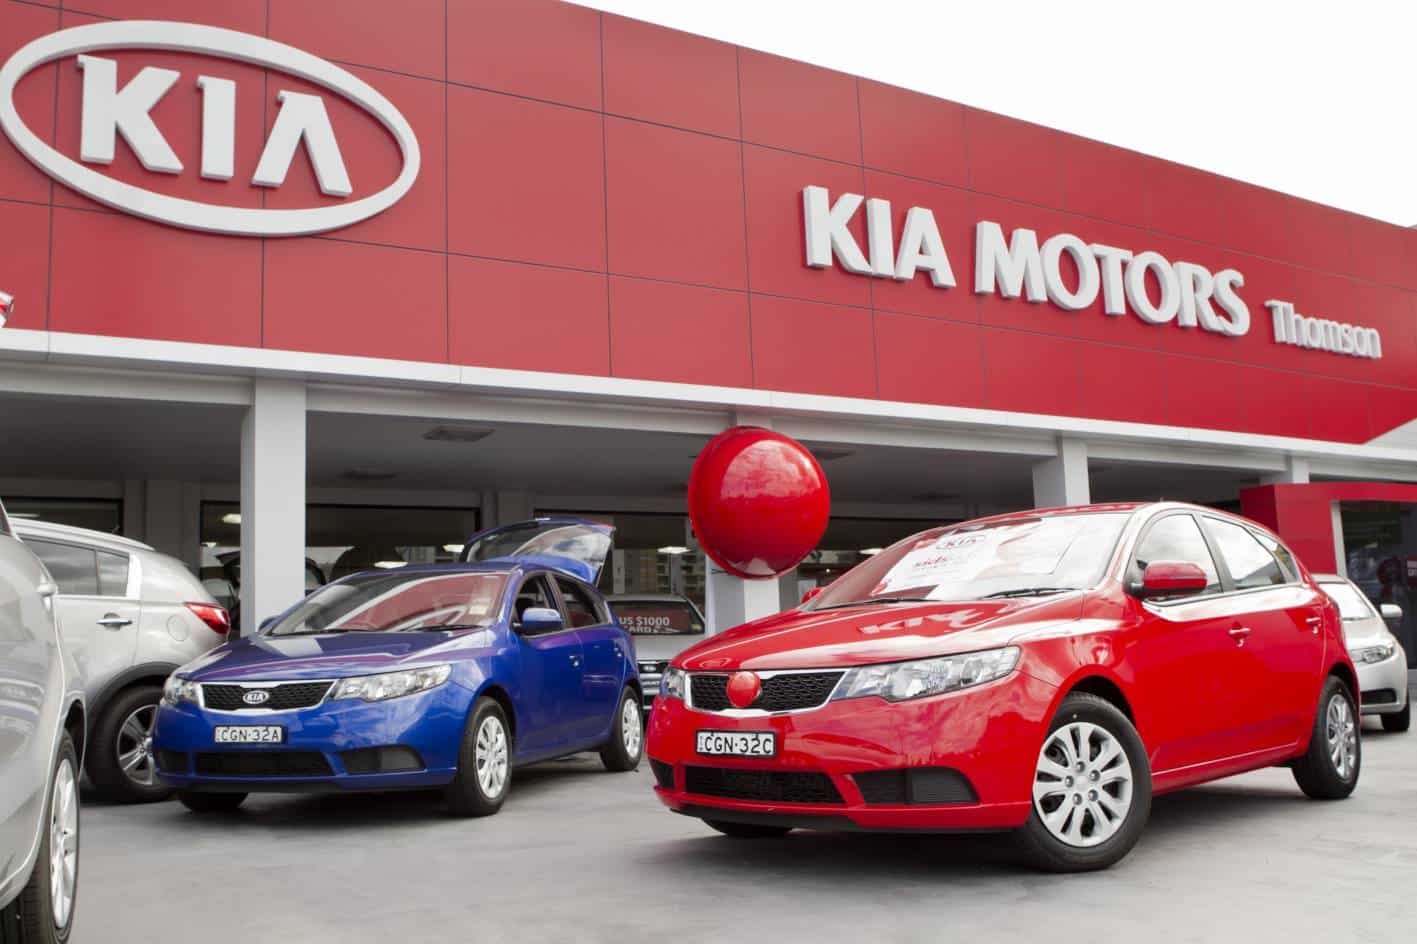 20 Amazing Facts About Kia Cars You May Not Know